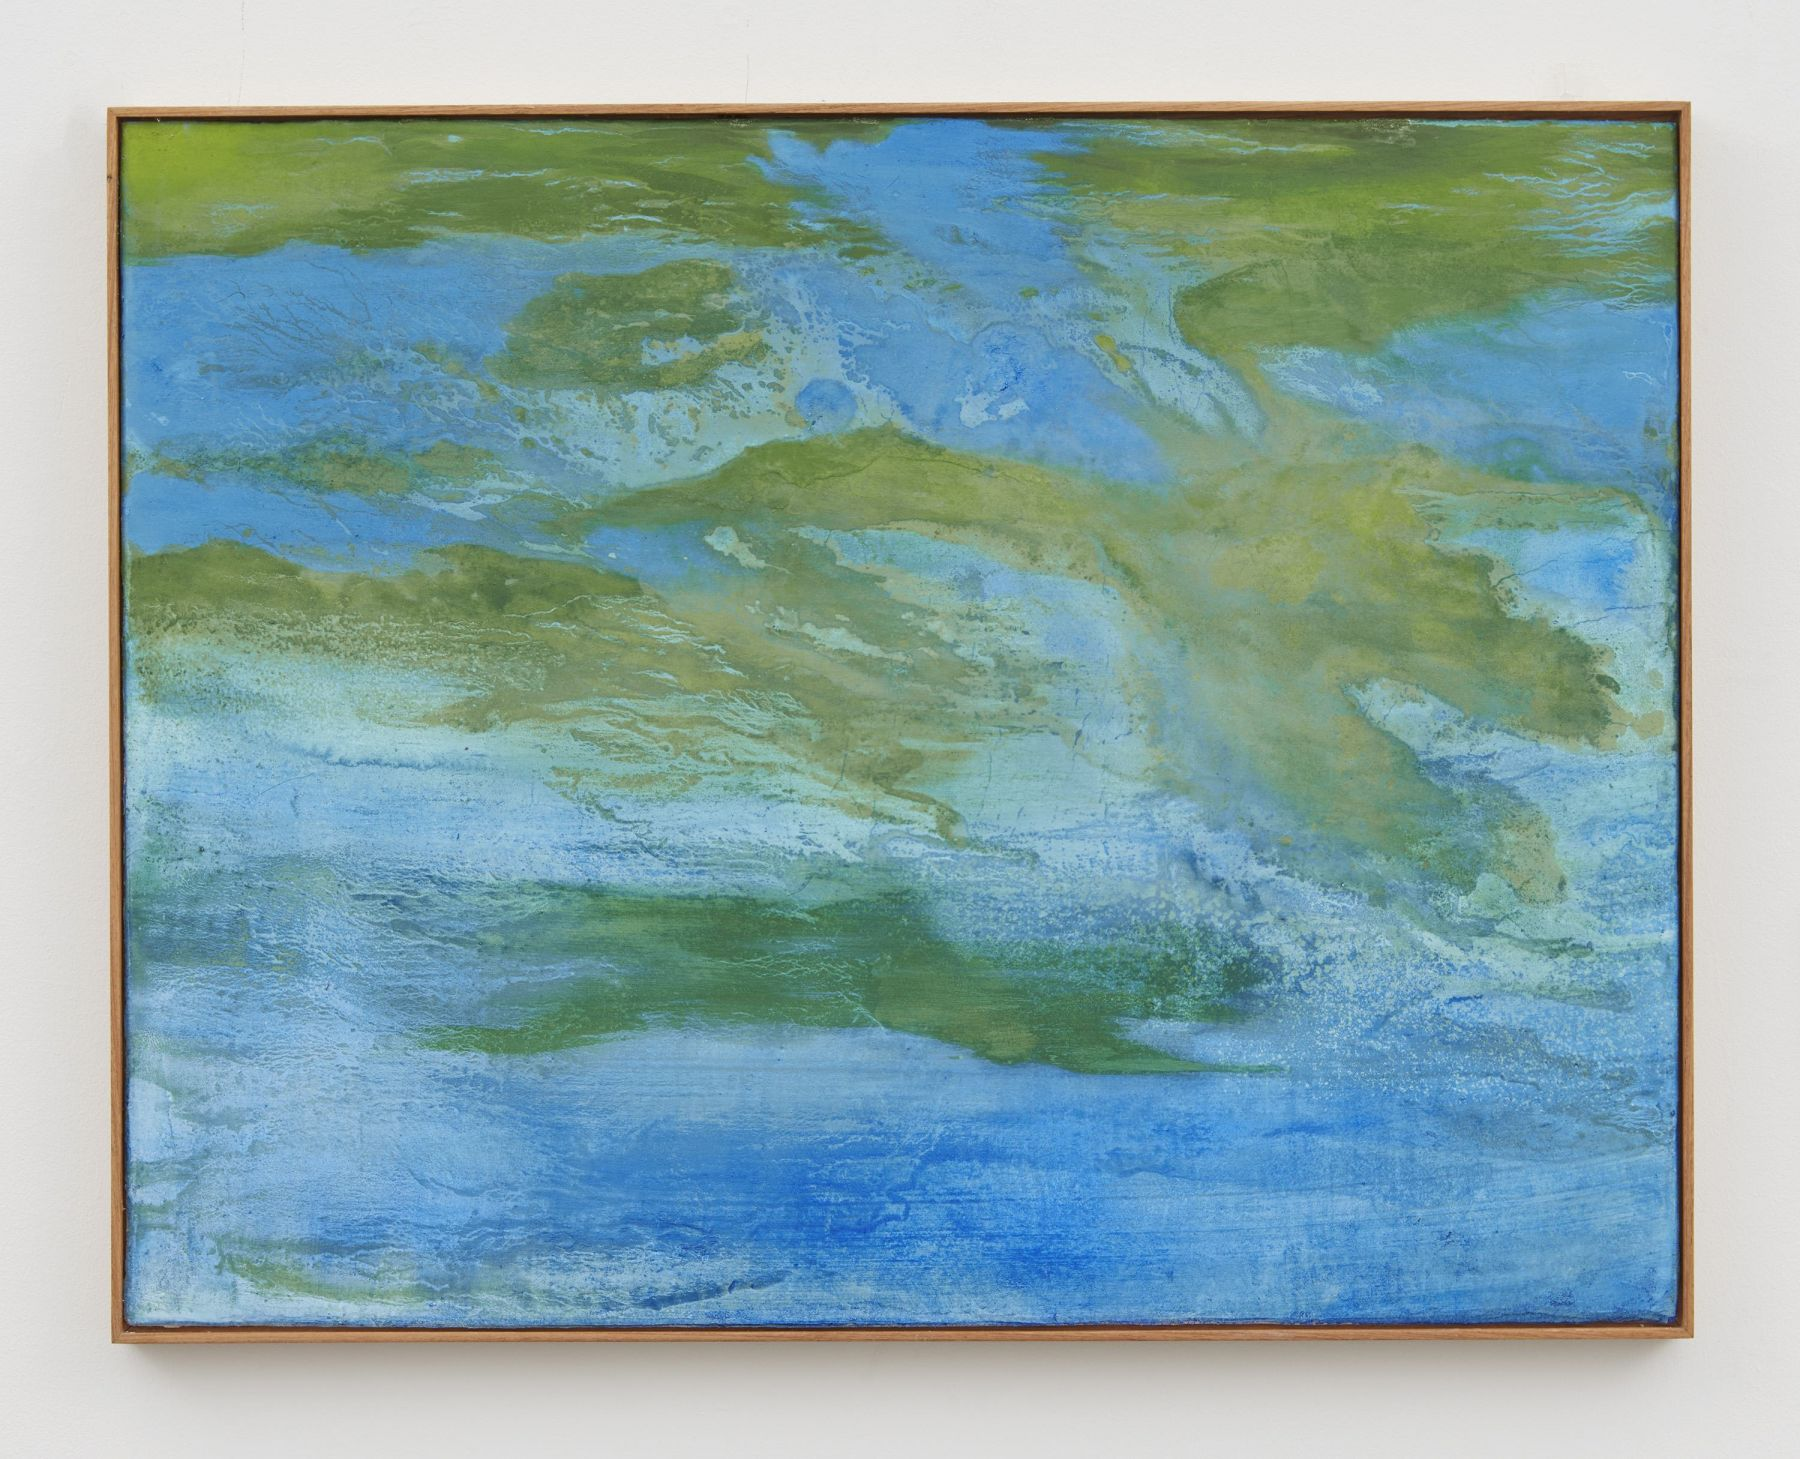 seascape with cianobacteria, 2017